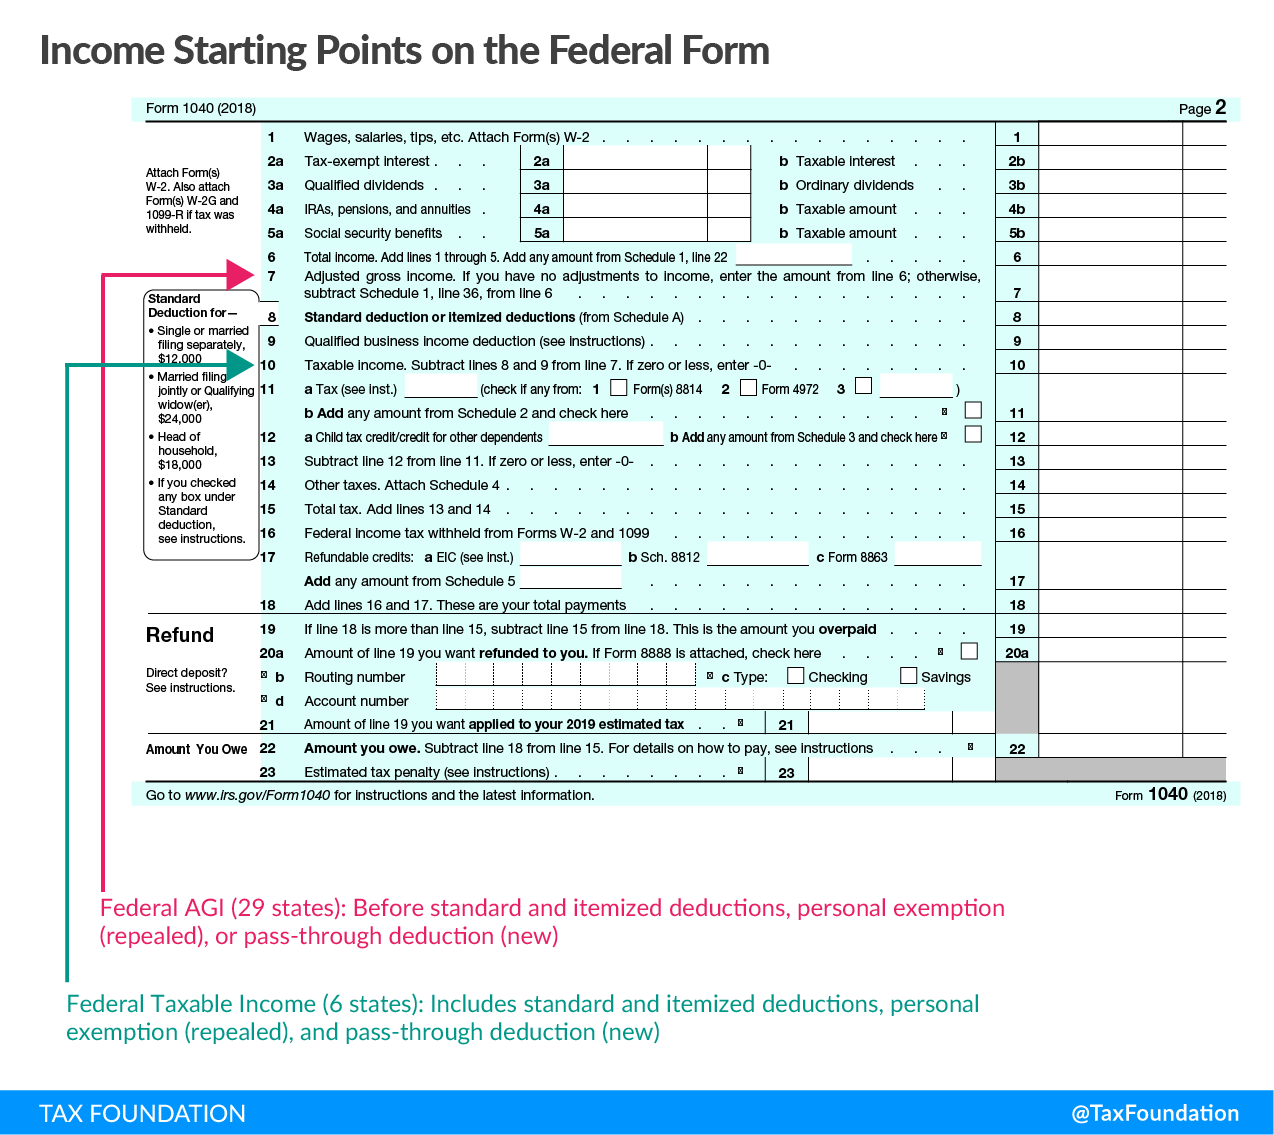 Income Tax Starting Points on the Federal Form